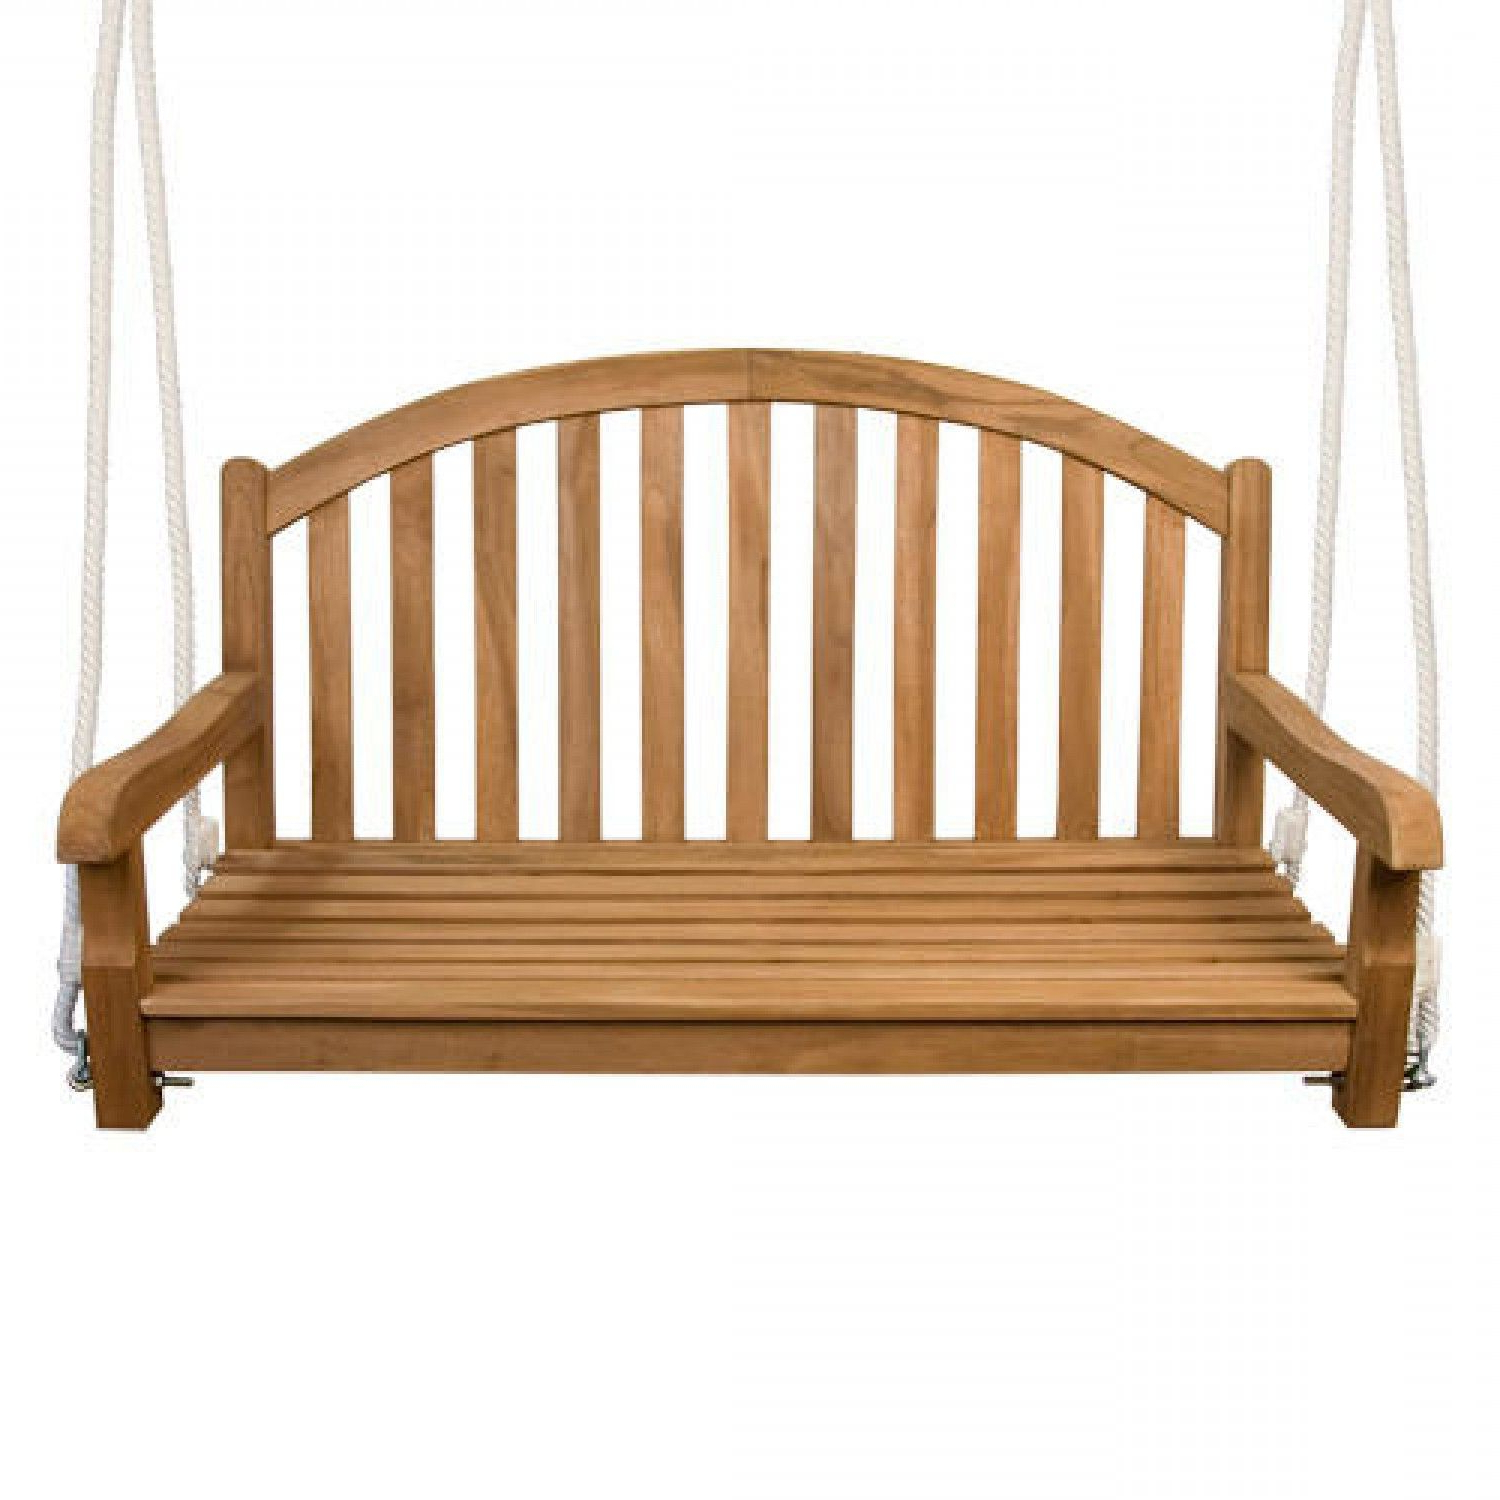 Best Home Decor Ideas And Pertaining To Famous Teak Porch Swings (View 9 of 25)